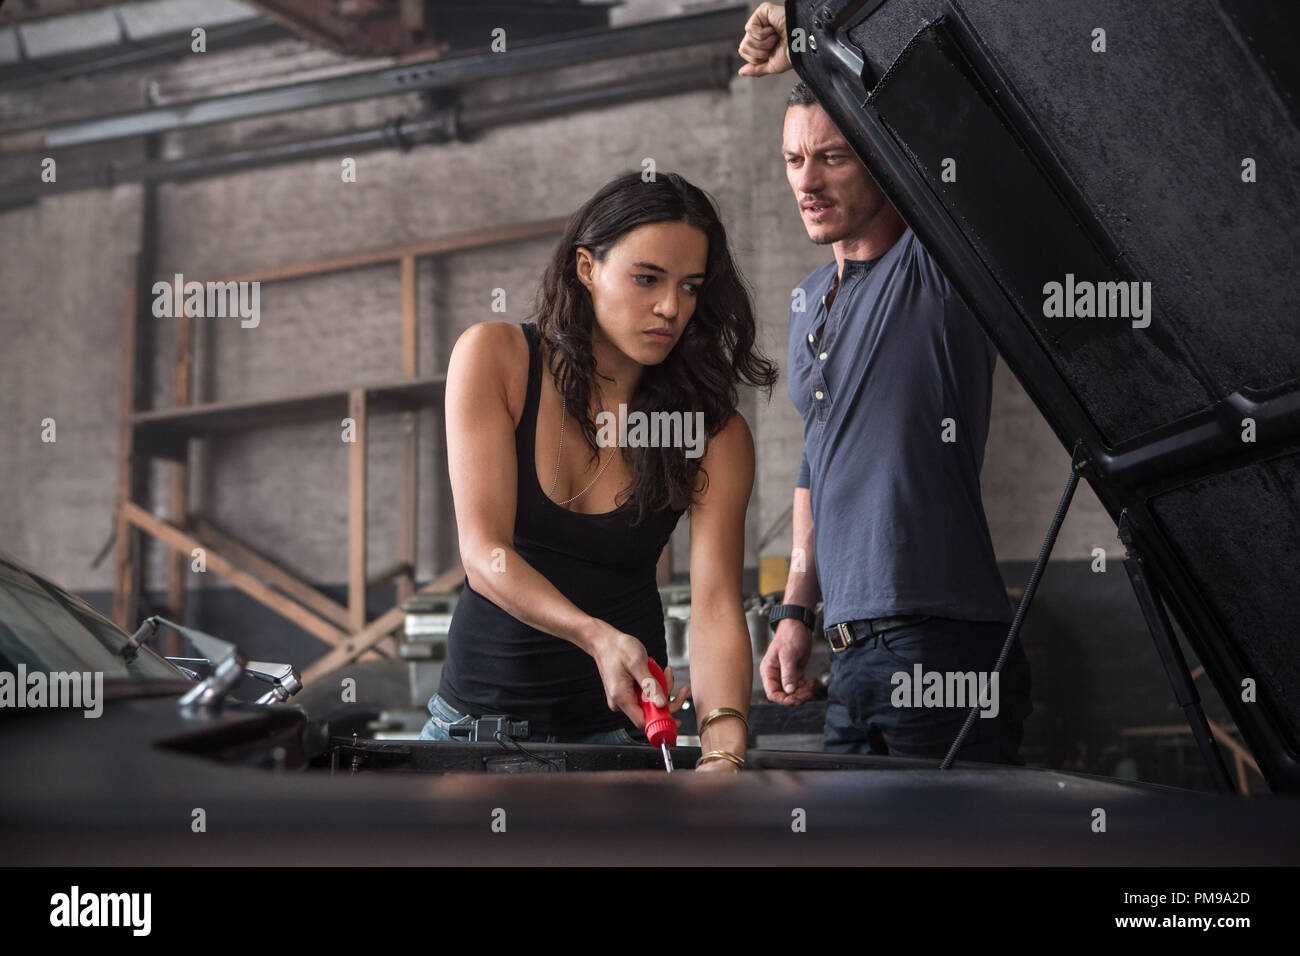 Letty (MICHELLE RODRIGUEZ) has her suspicions about Shaw (LUKE HOBBS) in 'Fast & Furious 6', the next installment of the global blockbuster franchise built on speed. - Stock Image